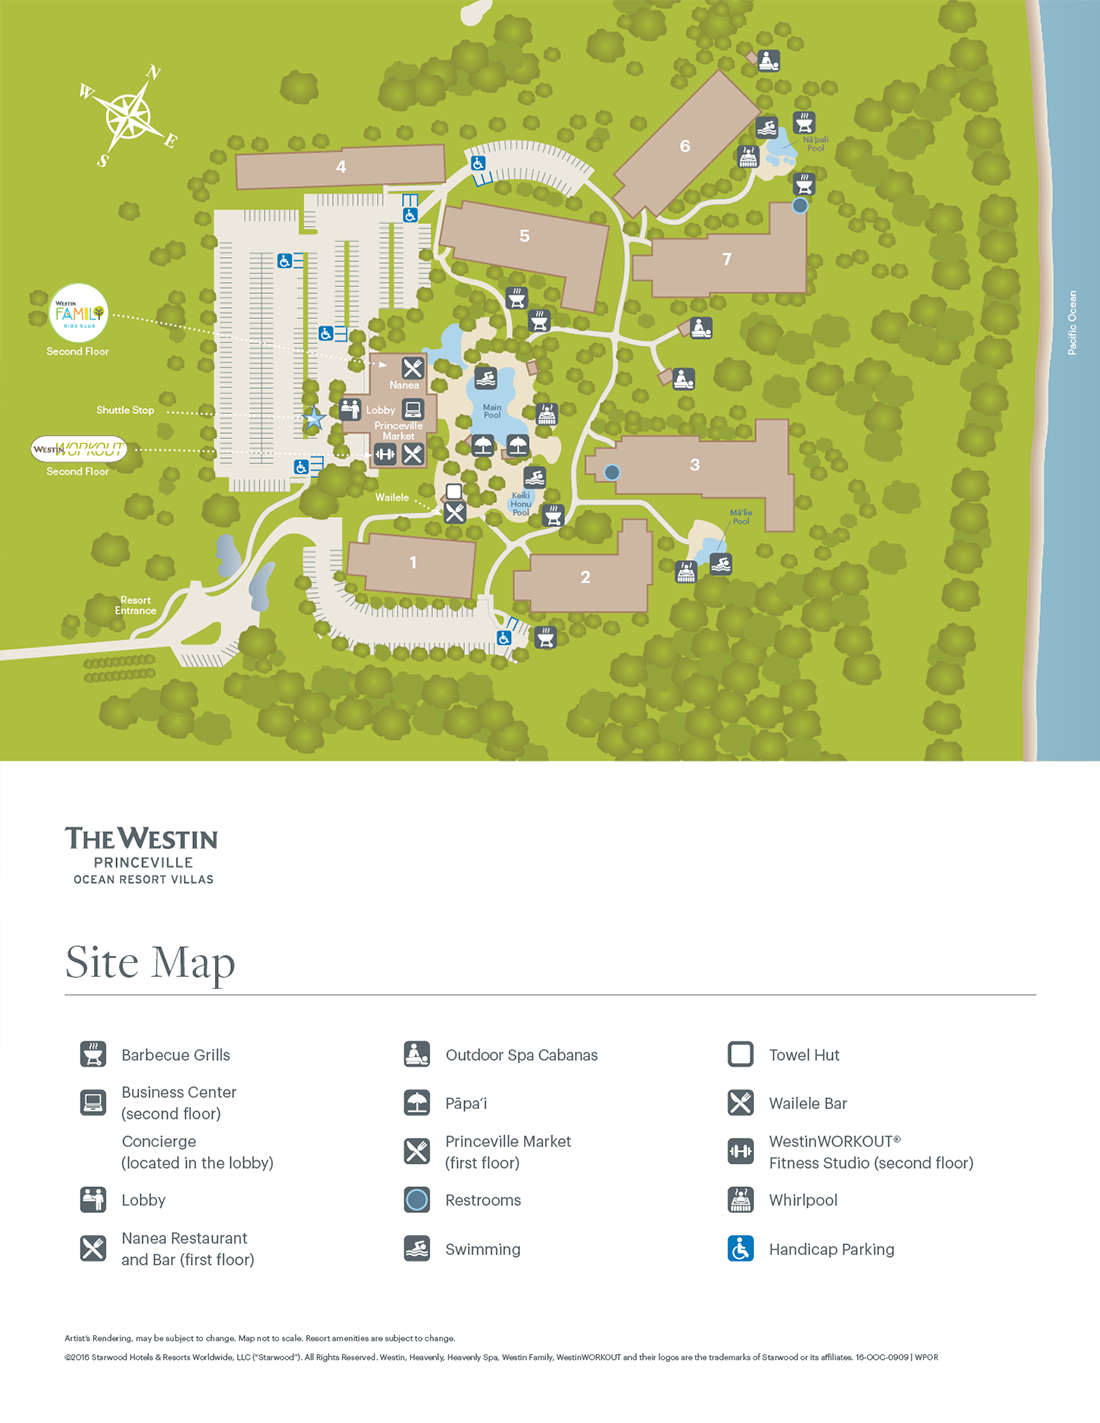 The Westin Princeville Ocean Resort Villas Resort Map